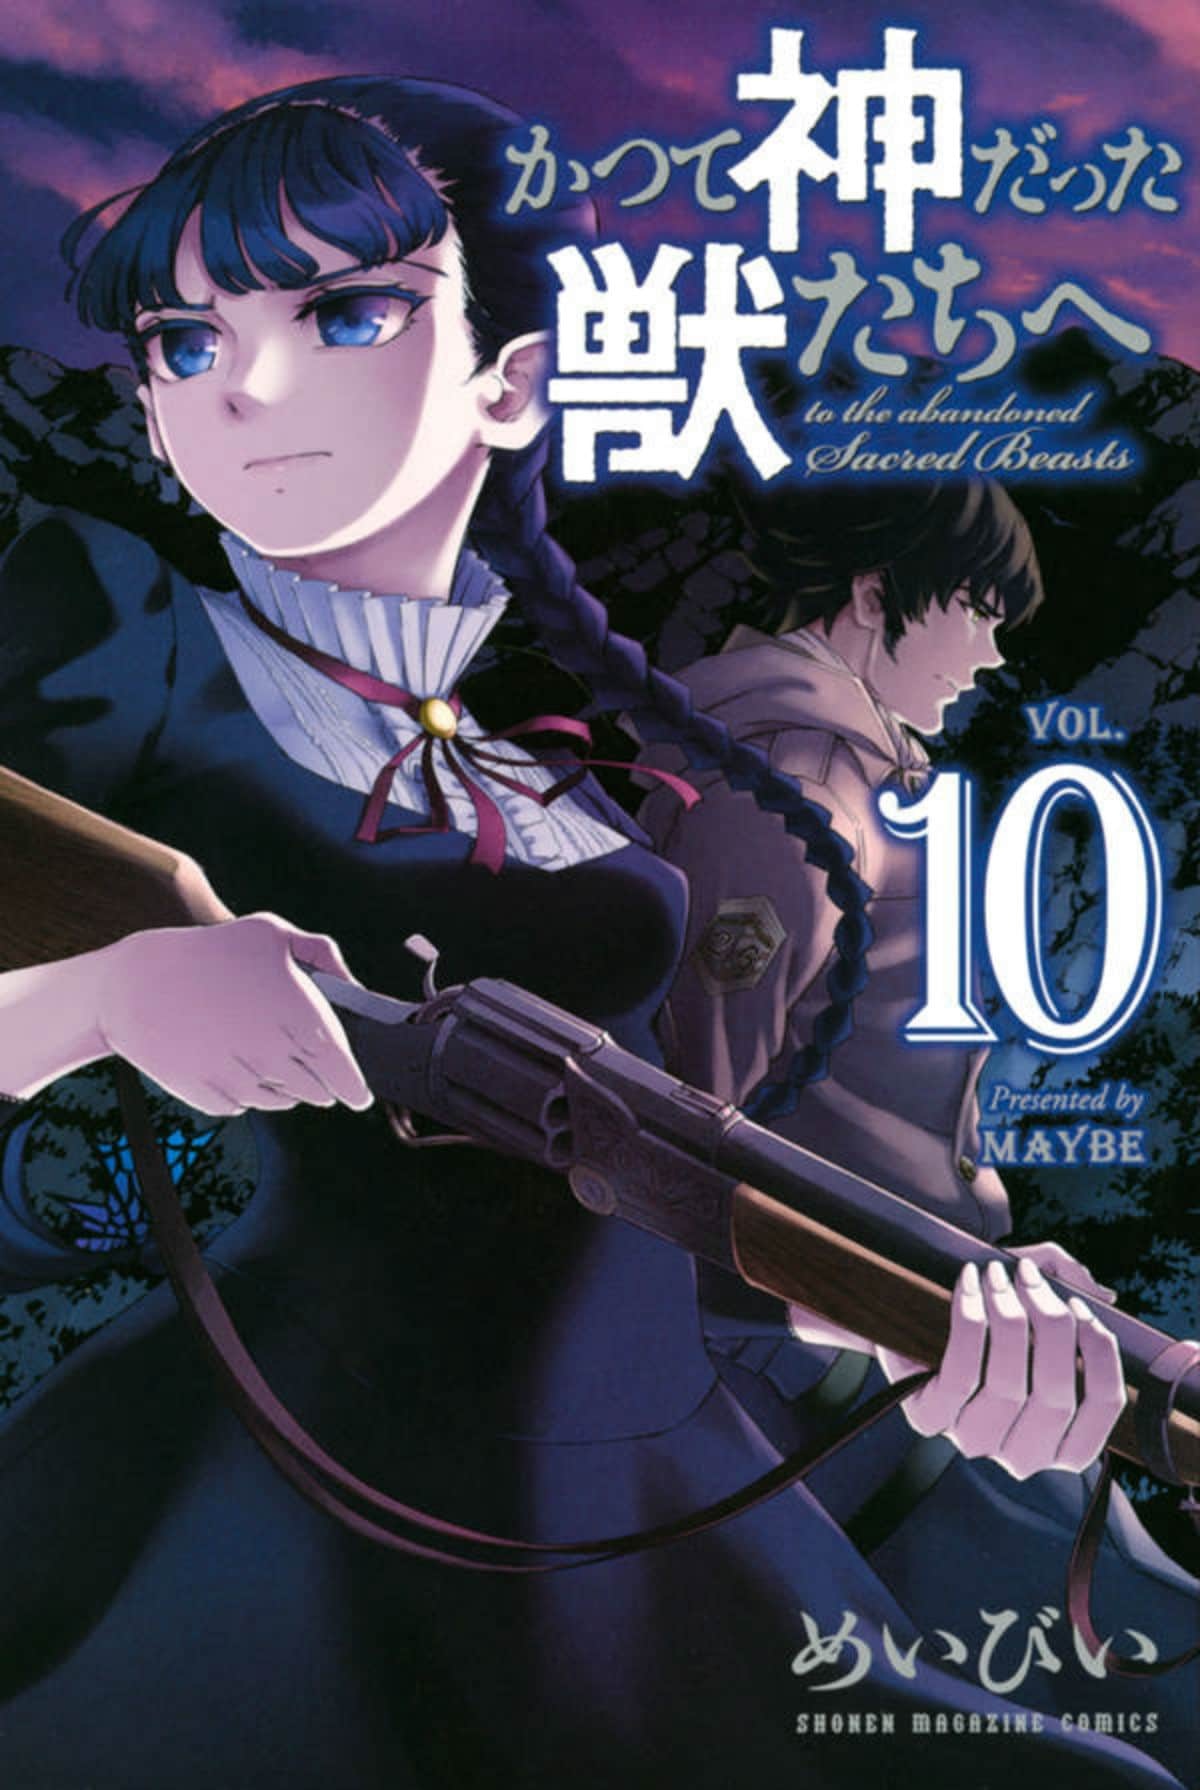 To The Abandoned Sacred Beasts Volume 10 Manga Cover Art